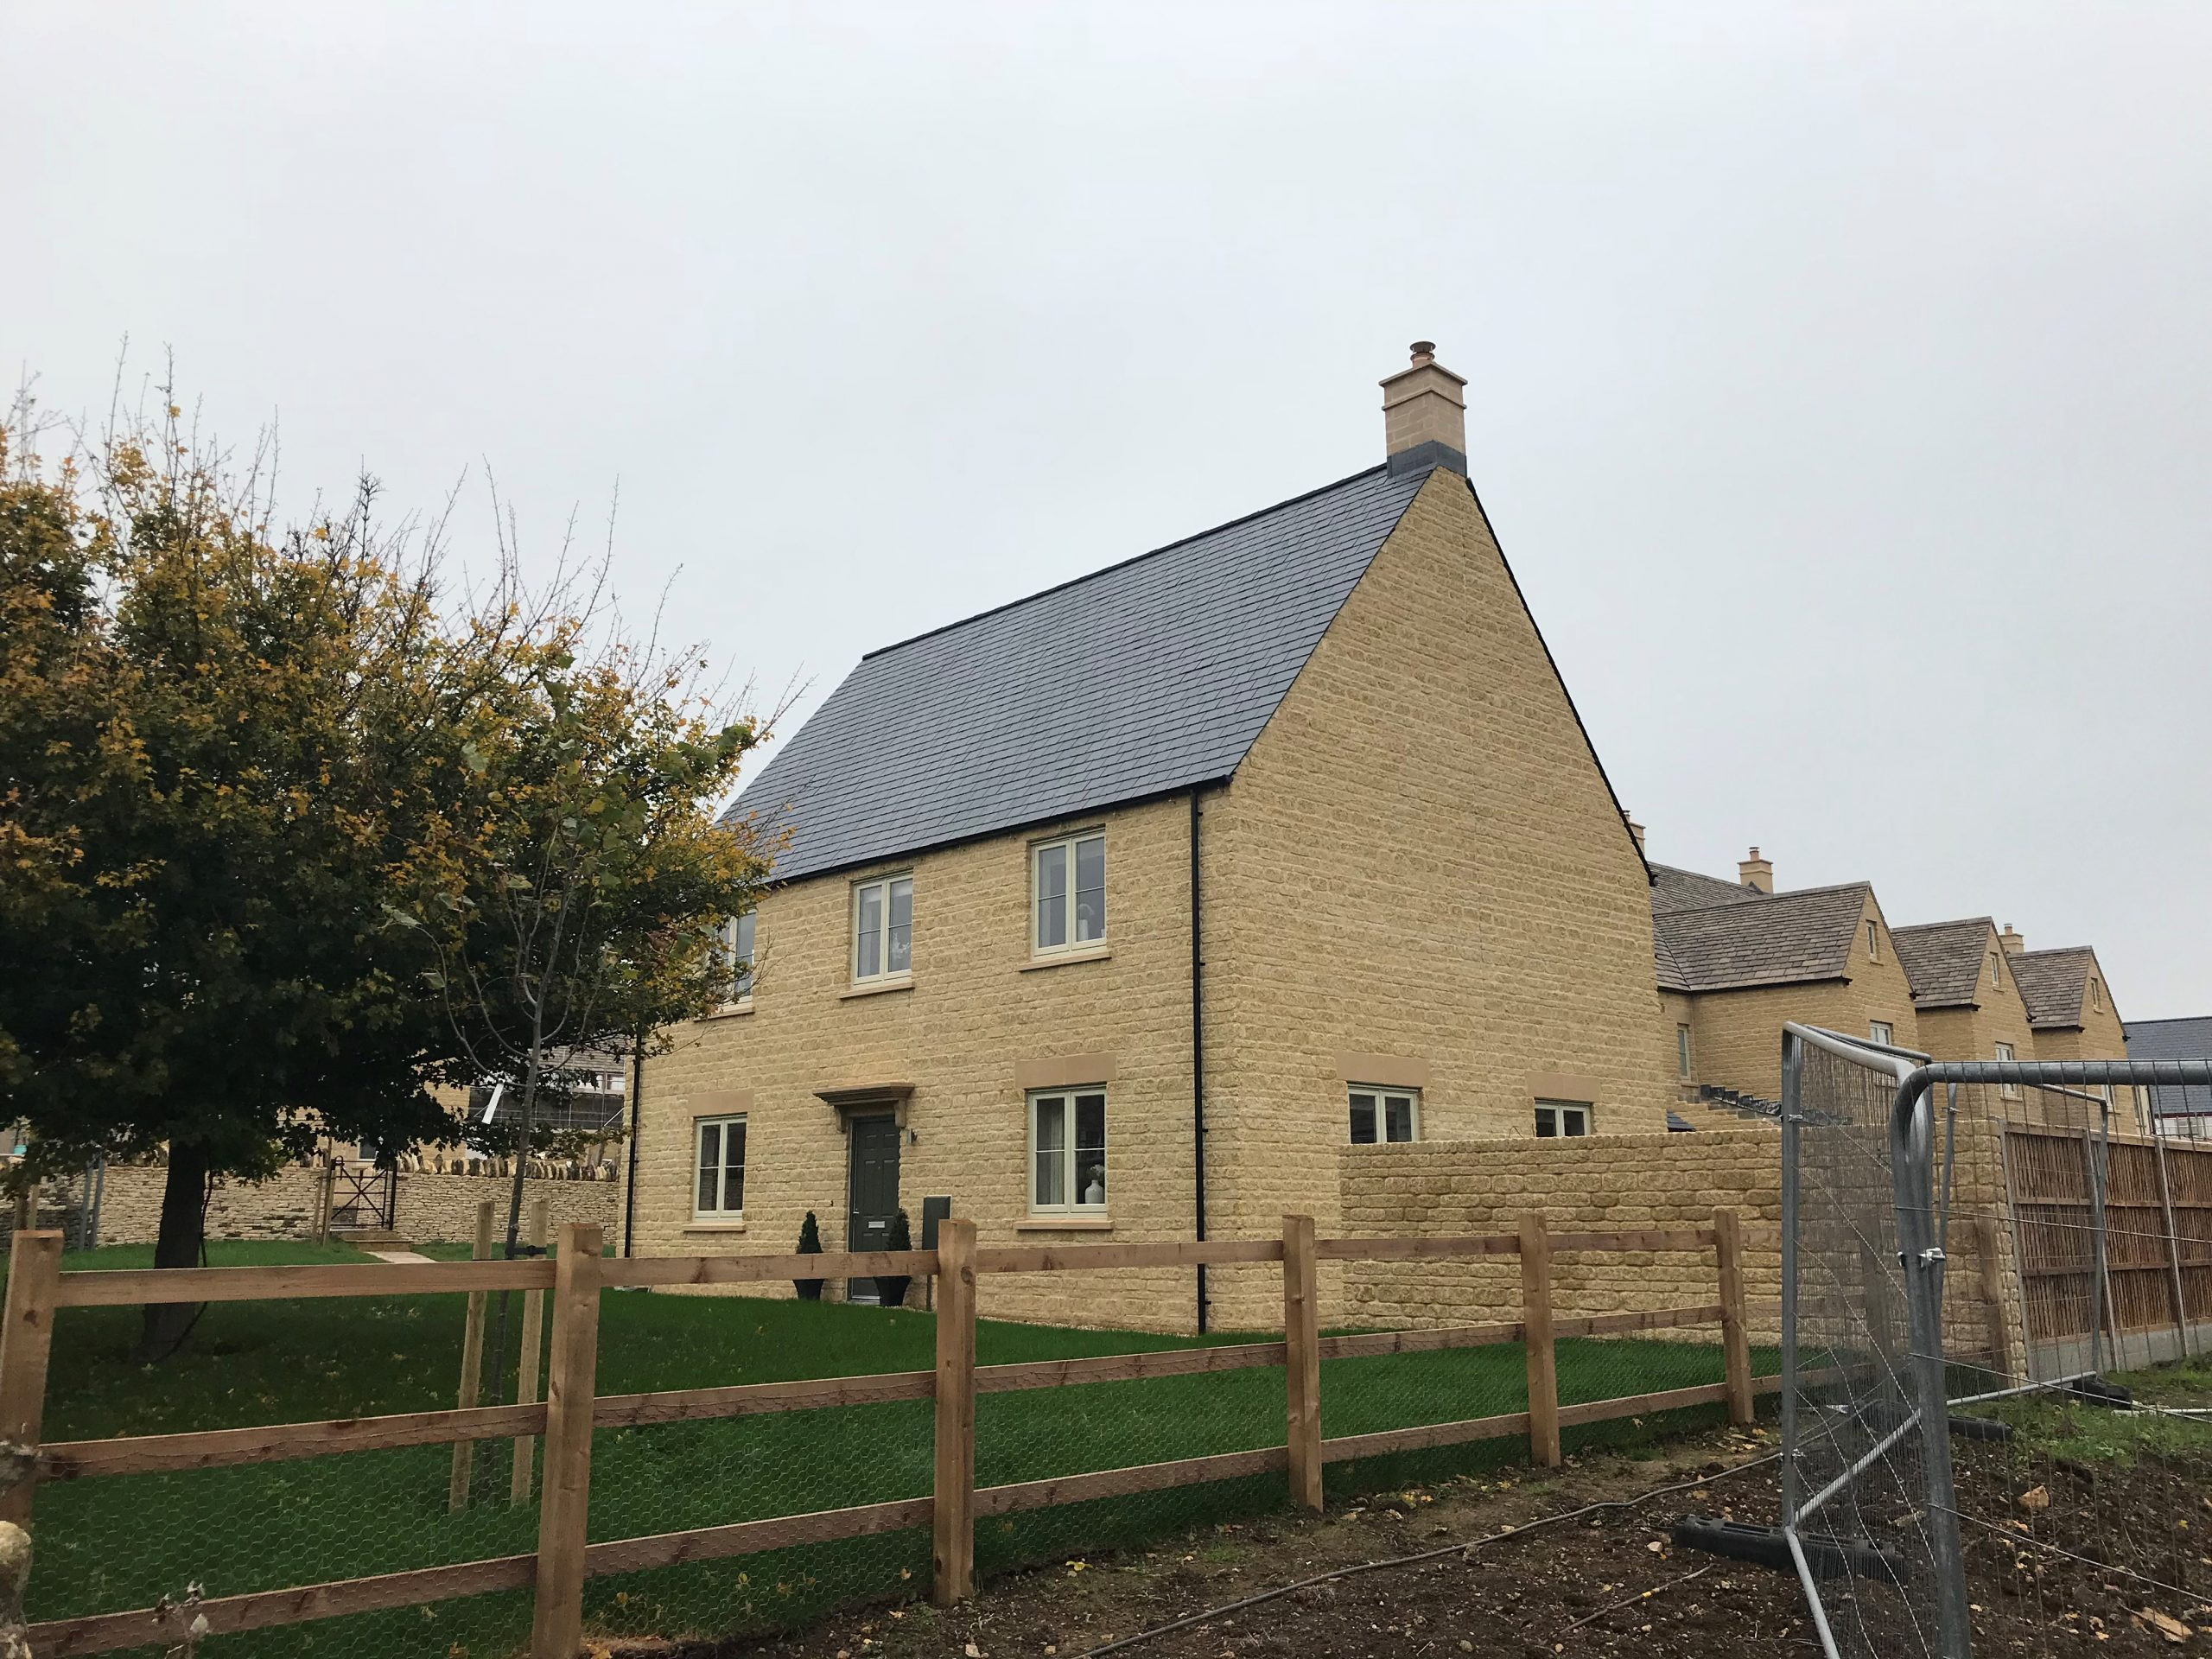 House with Amber Valley Stone